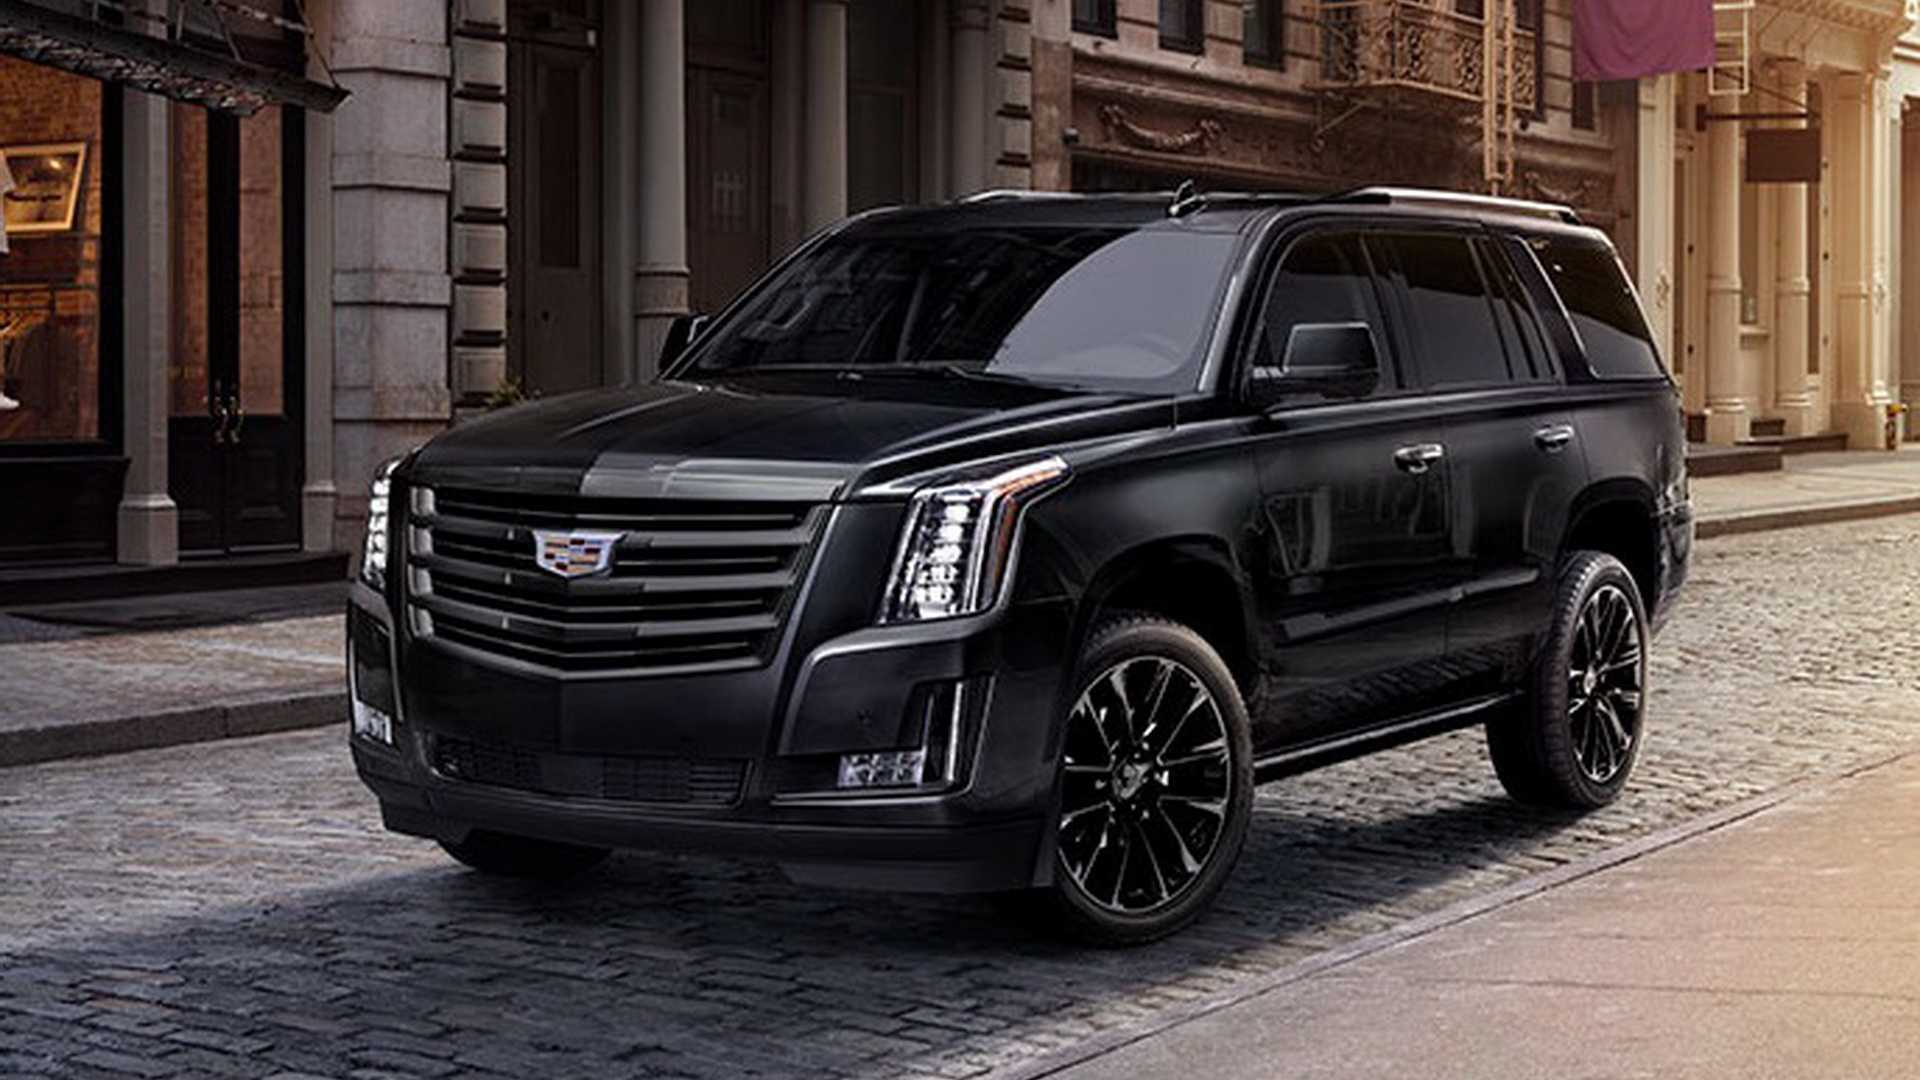 26 Great 2020 Cadillac Escalade Vsport Prices for 2020 Cadillac Escalade Vsport